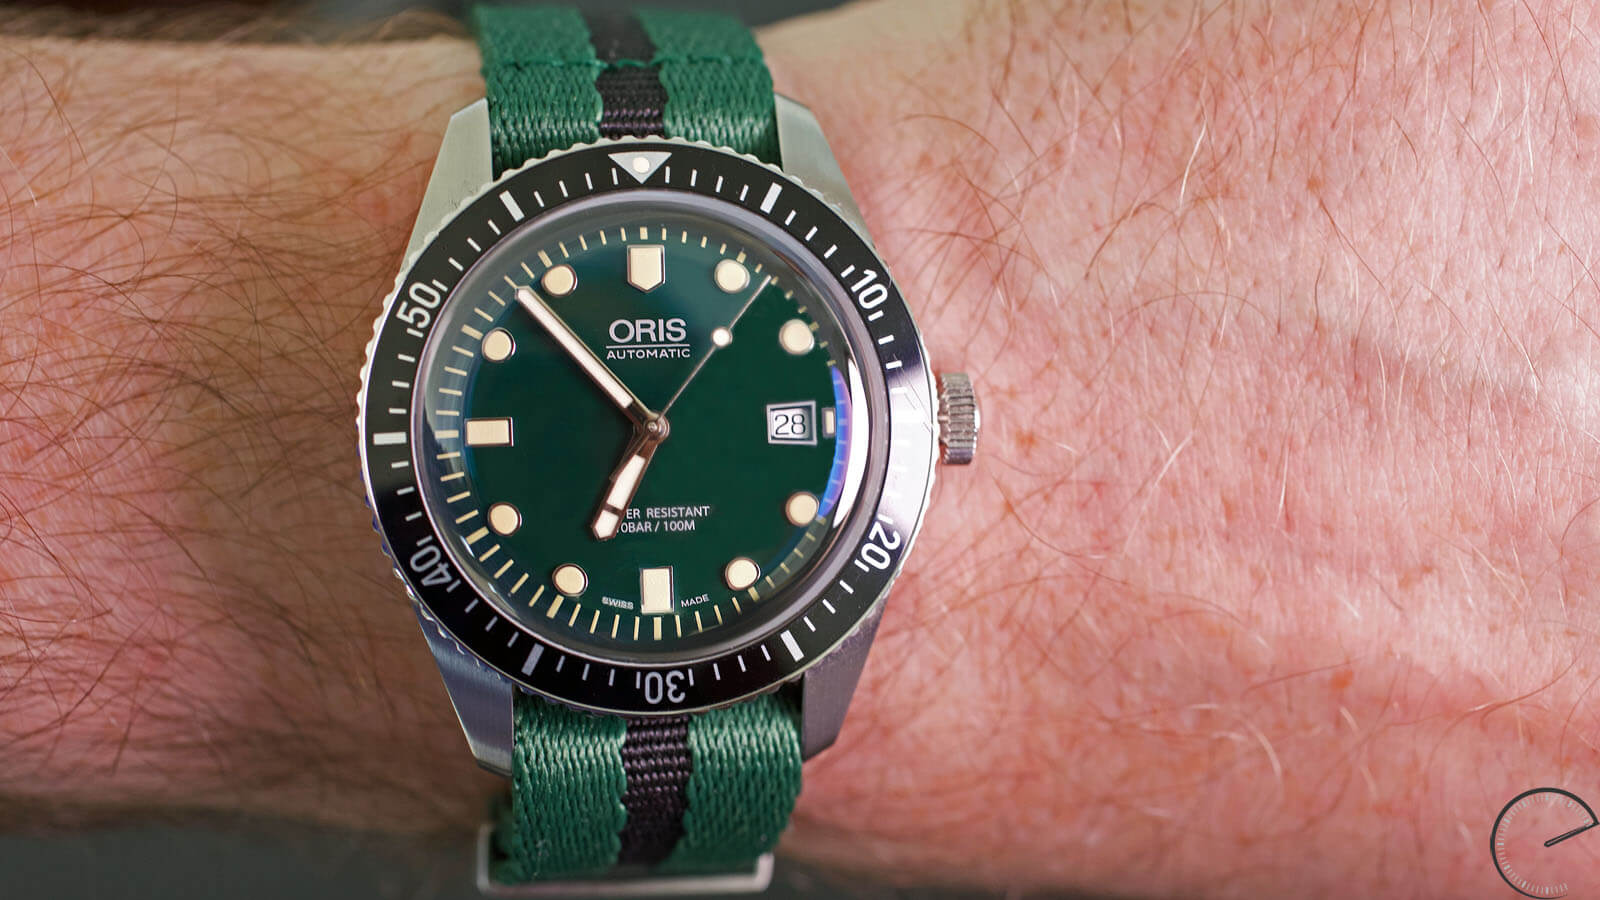 Image of Oris Divers Sixty-Five Green Dial - divers' watch